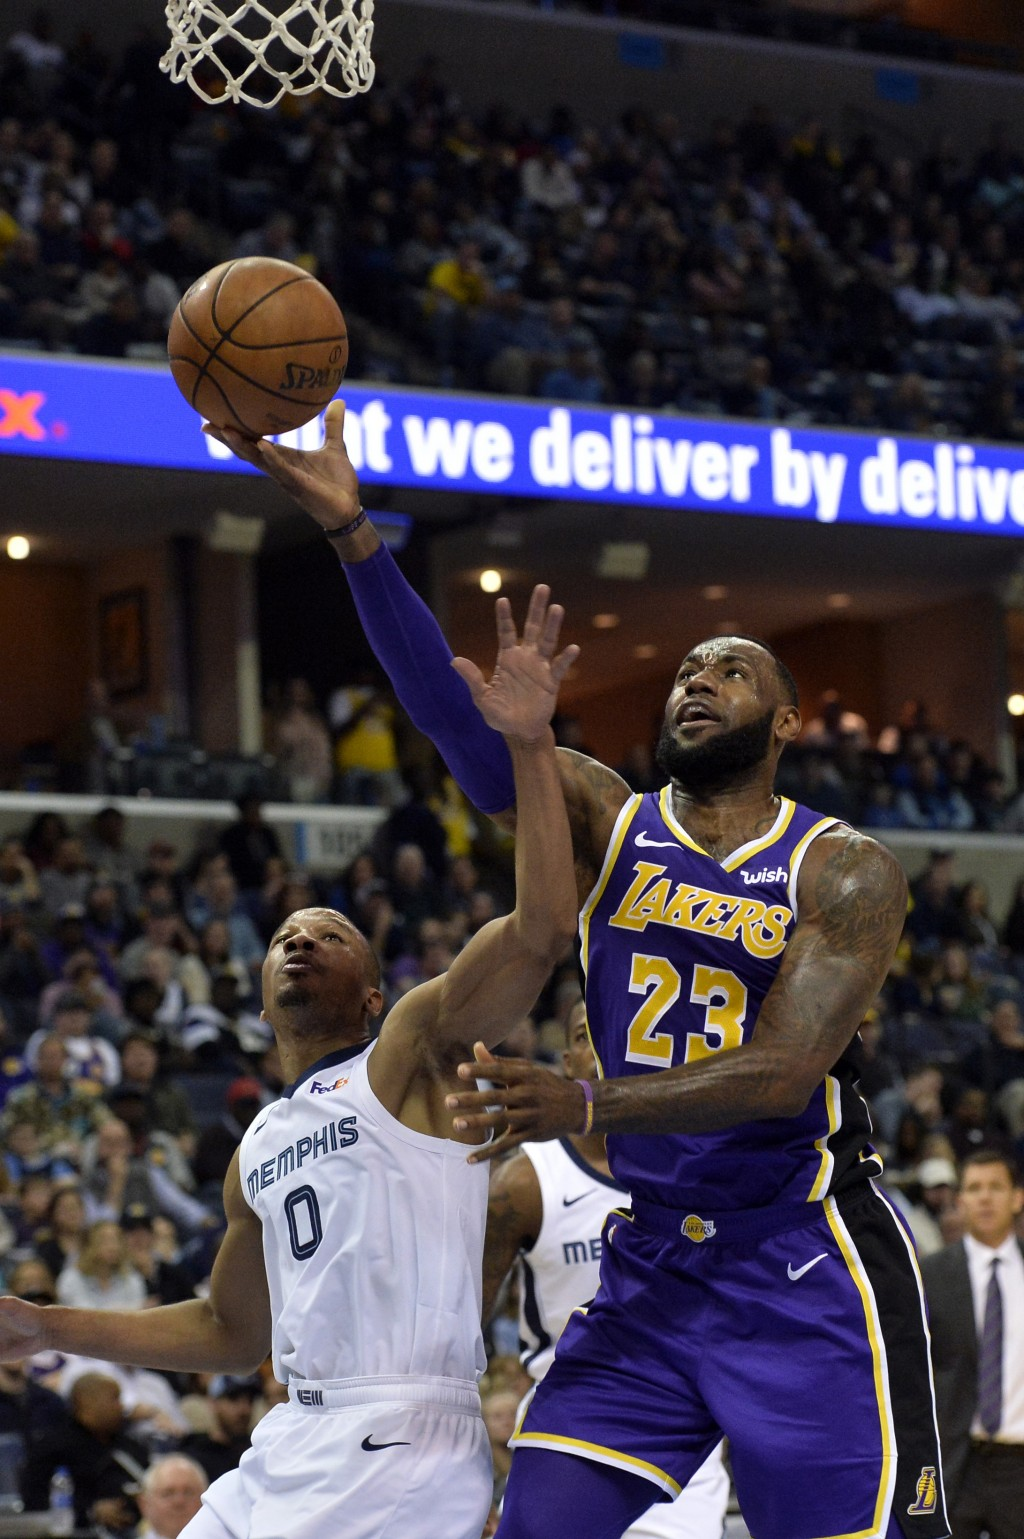 Los Angeles Lakers forward LeBron James (23) shoots against Memphis Grizzlies guard Avery Bradley (0) in the first half of an NBA basketball game Mond...